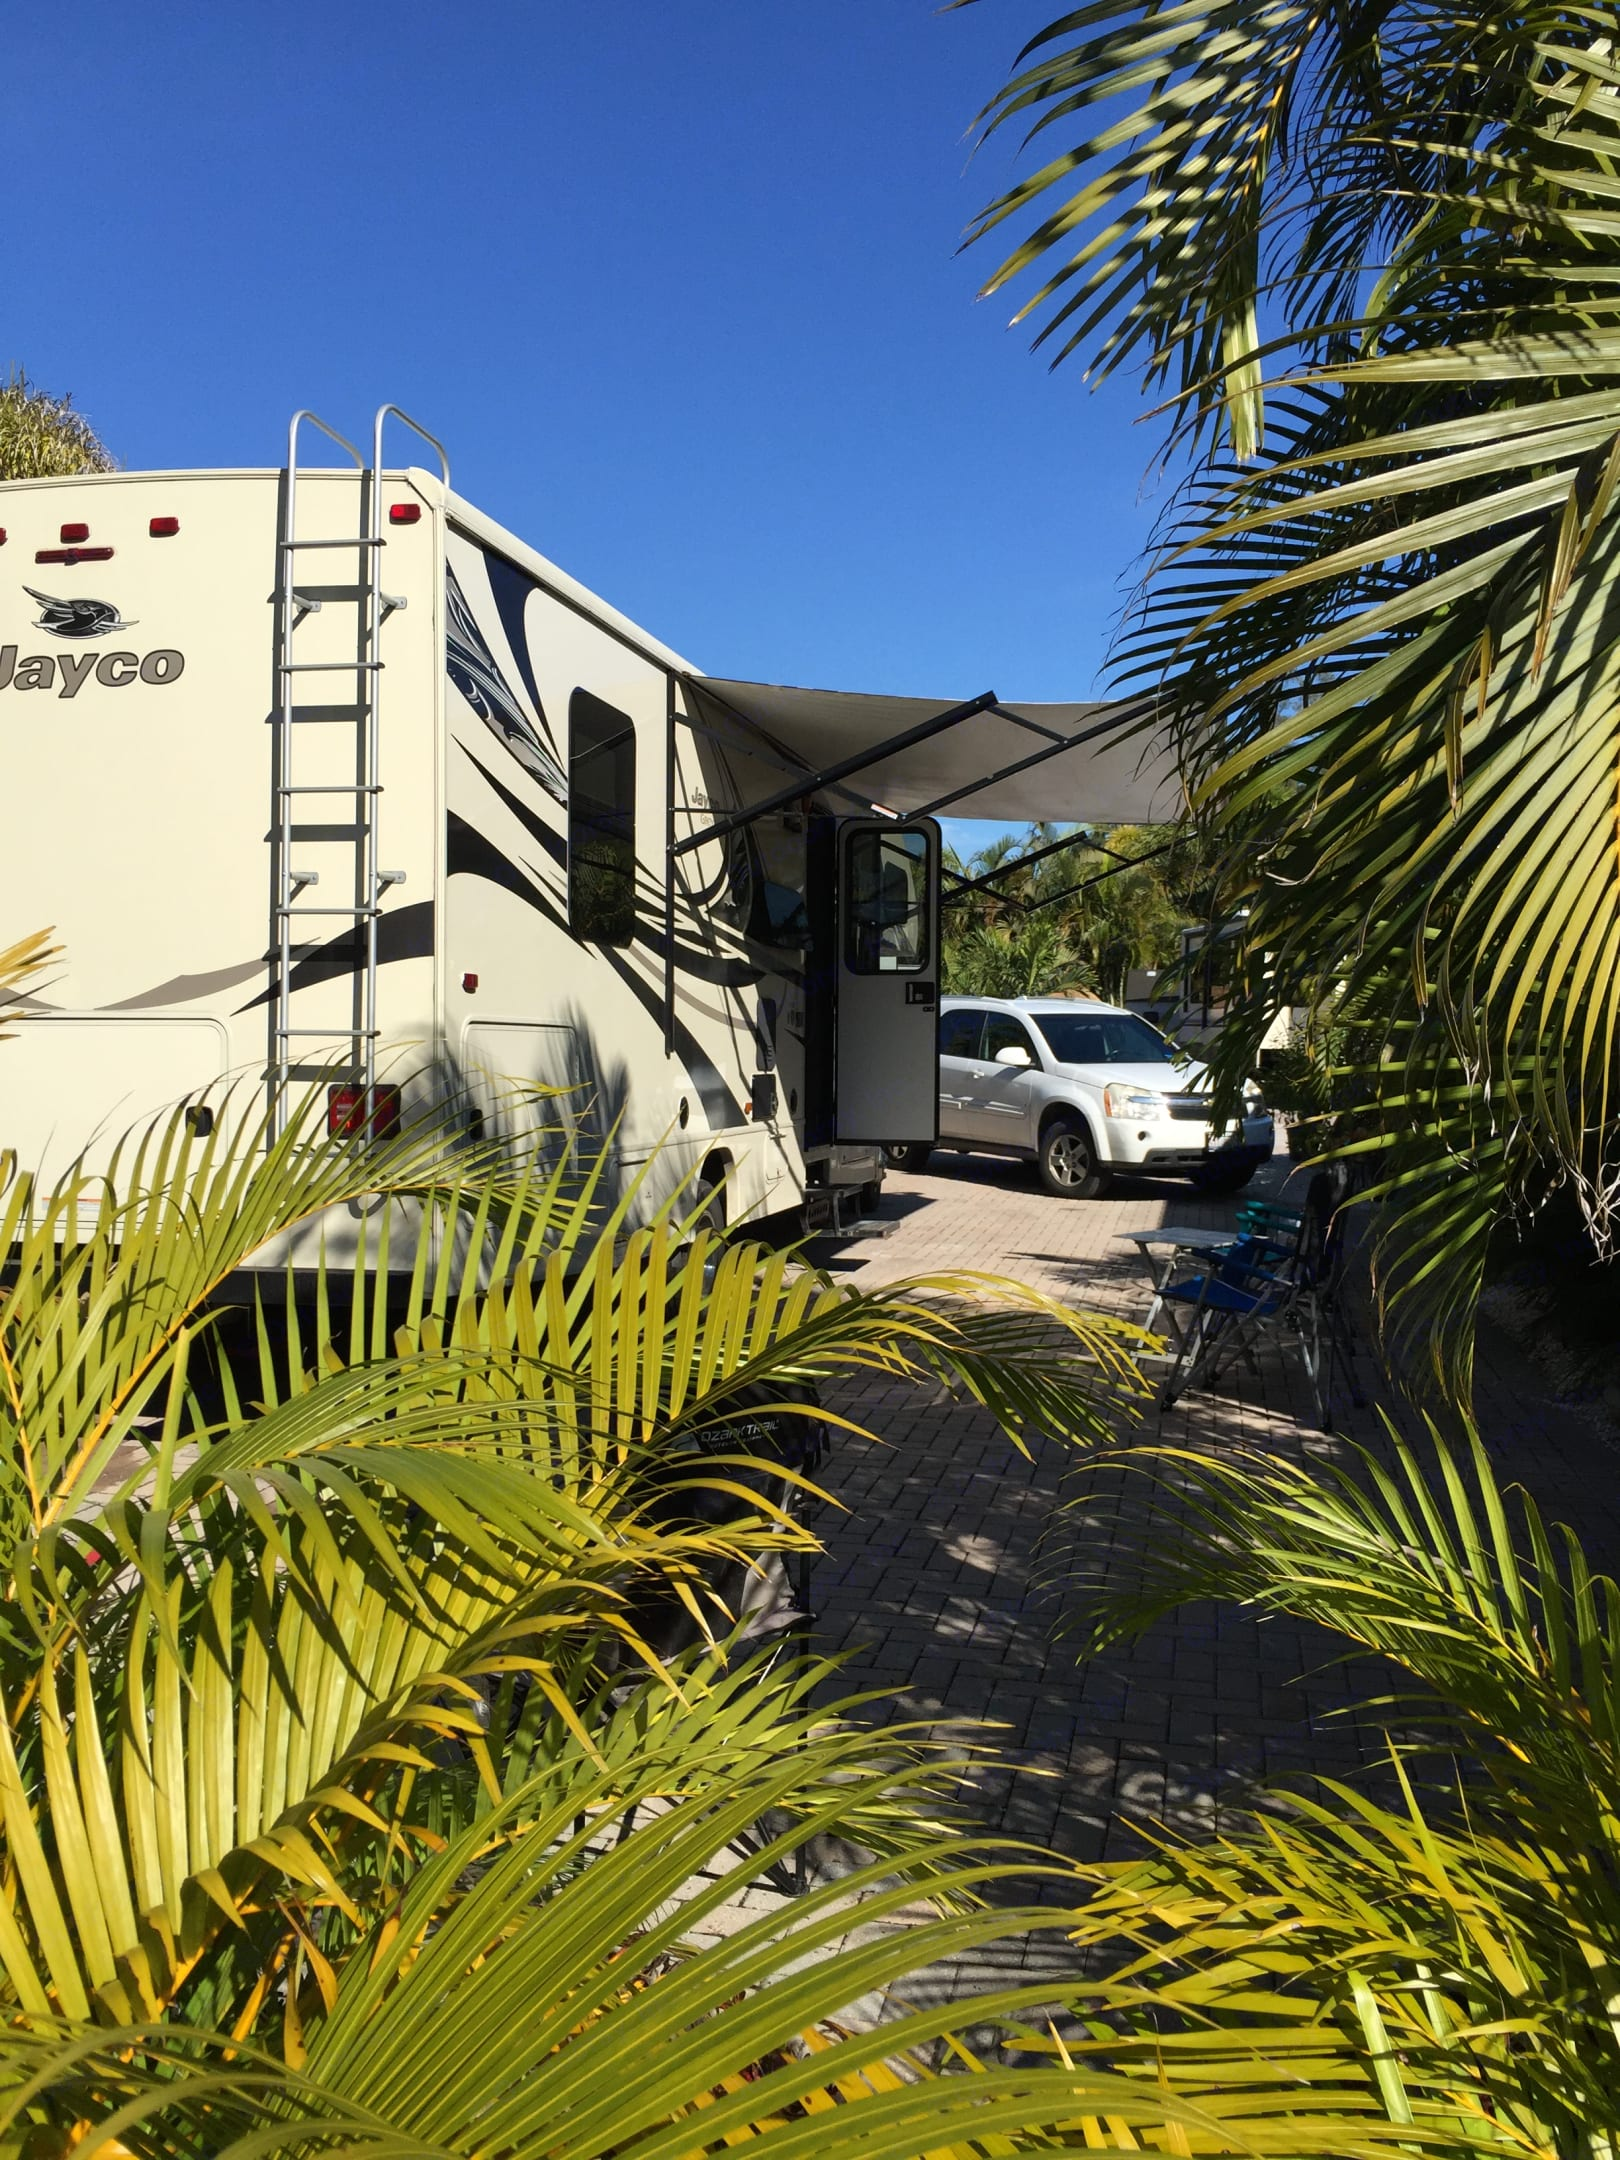 With the awning out, it's an outdoor living area. Jayco Greyhawk 2017